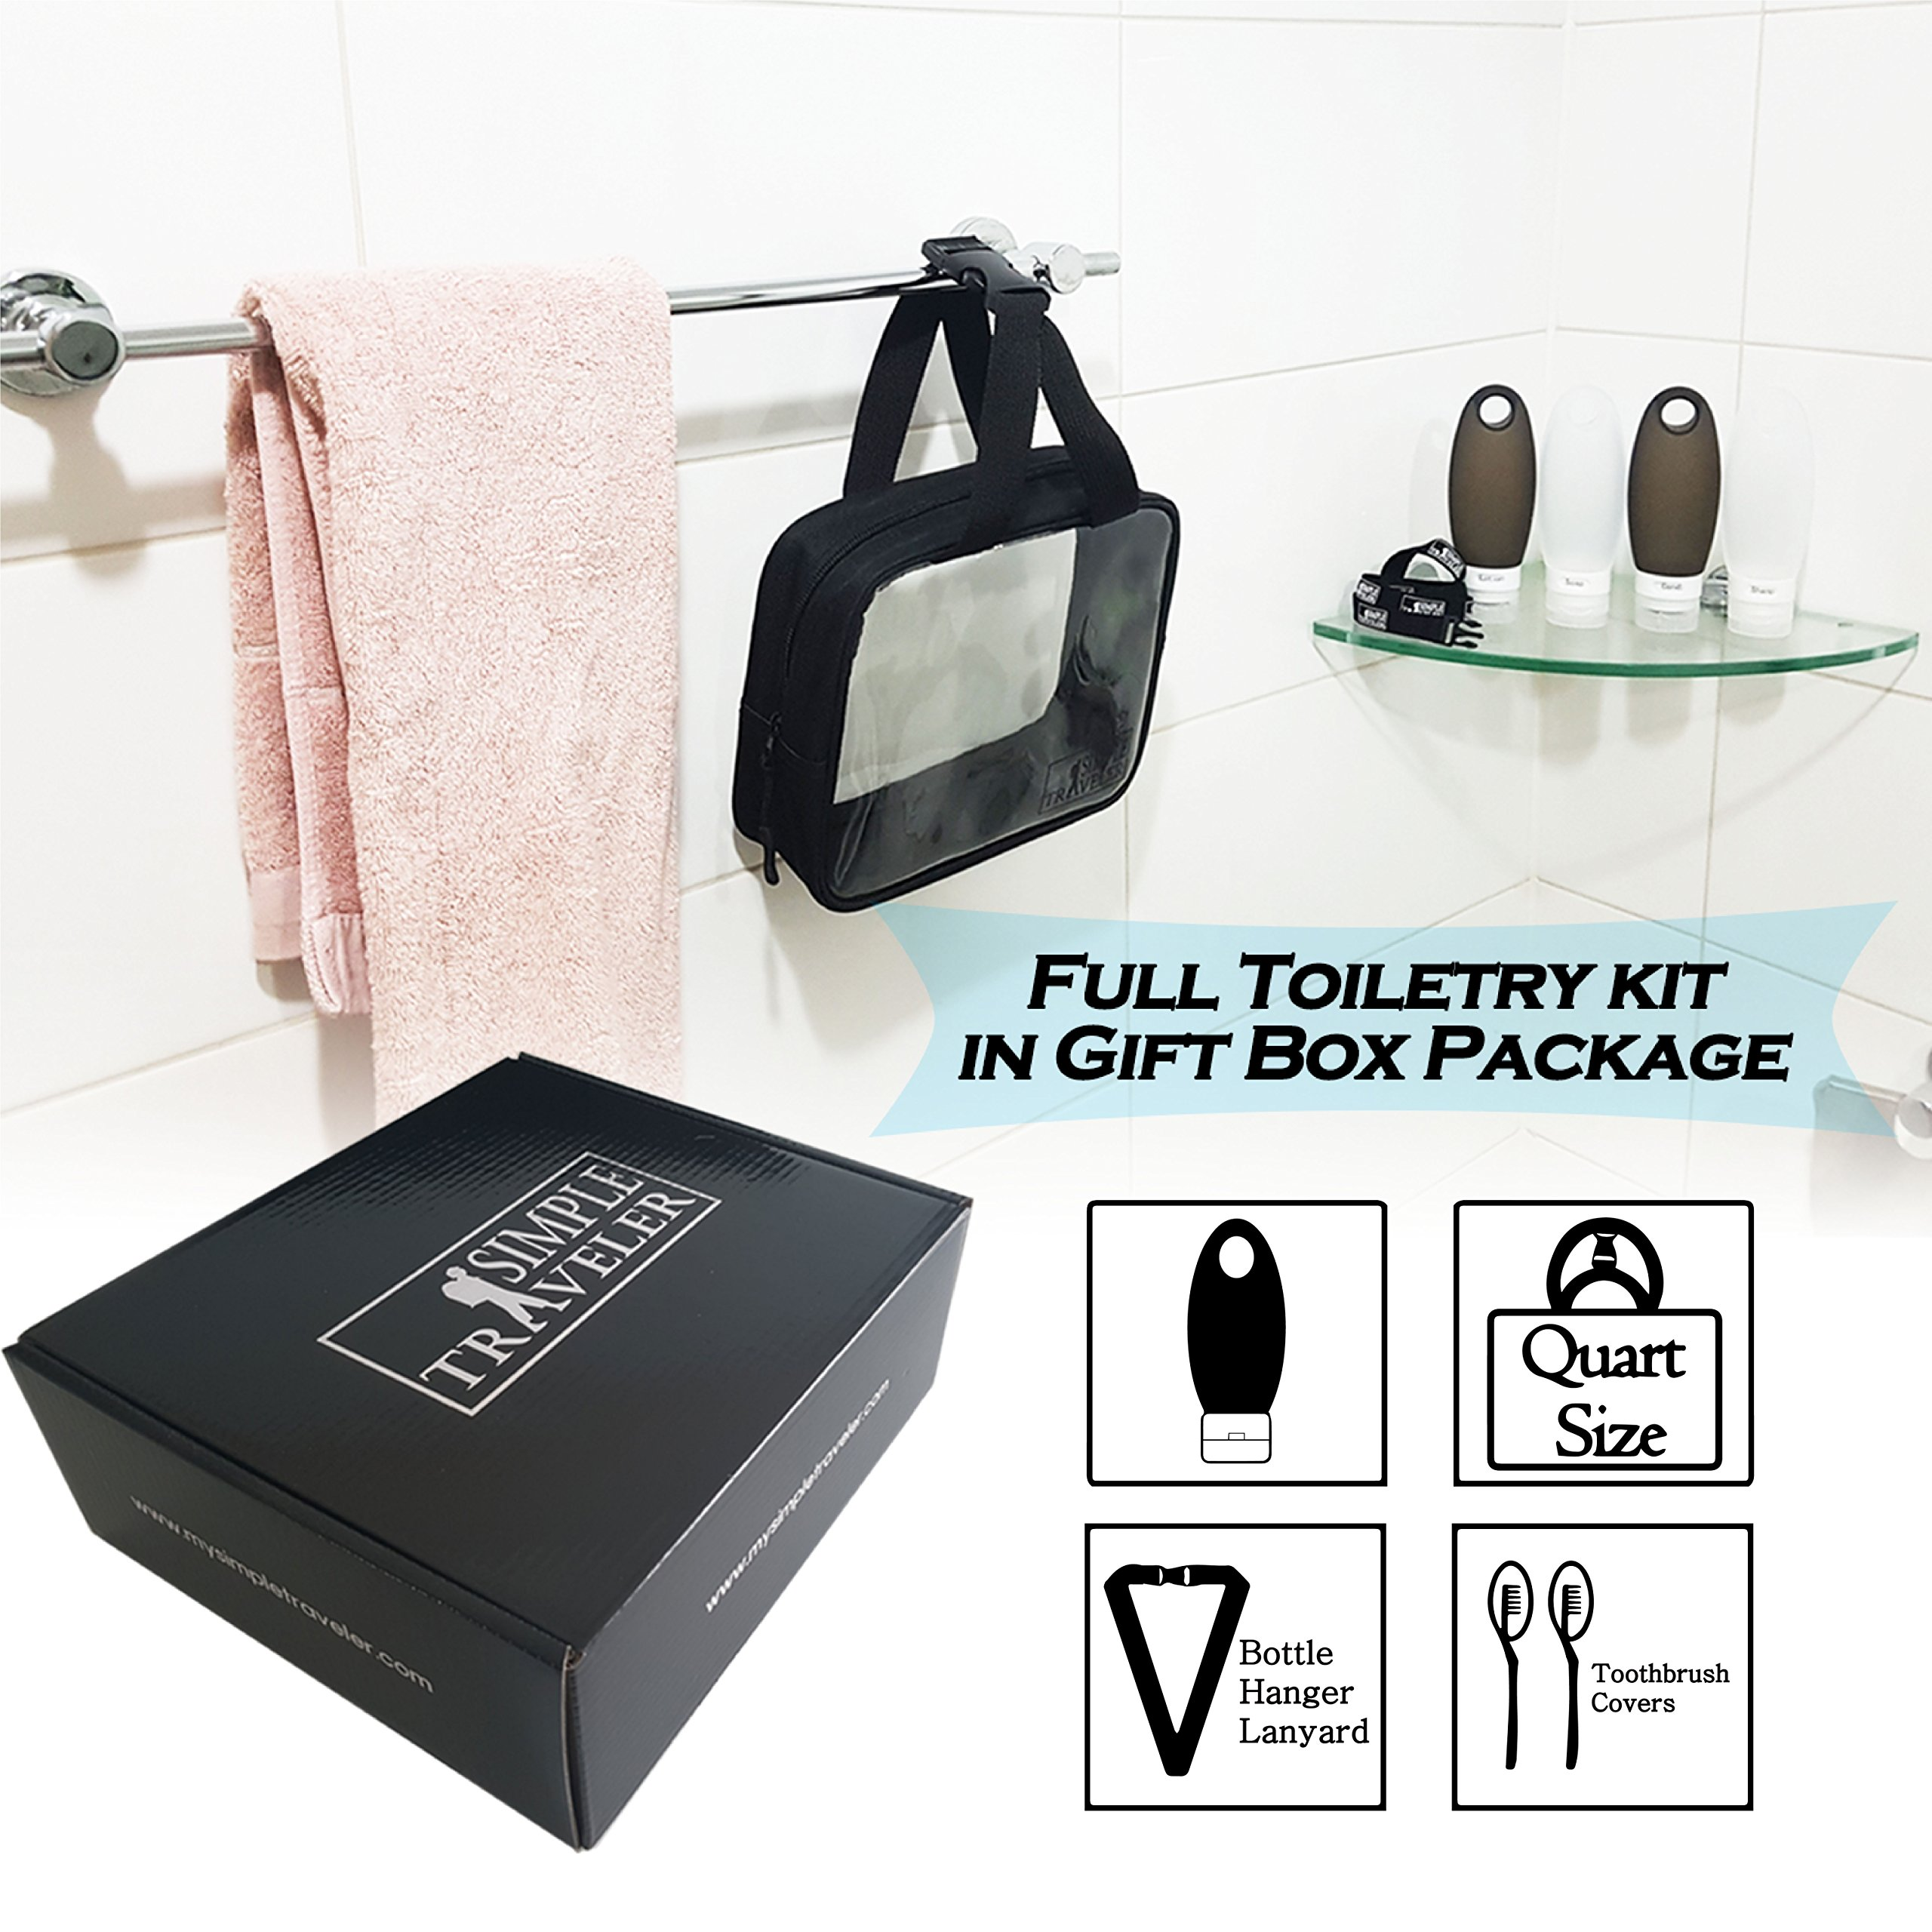 TSA approved Toiletry Bag Squeezable Silicone Travel Bottles Set | Clear Leak Proof Refillable Containers for Liquids (BPA Free, 3.3 OZ) | Toothbrush covers with Hanging Strap | Quart Sized Air Carry- by Simpletraveler (Image #9)